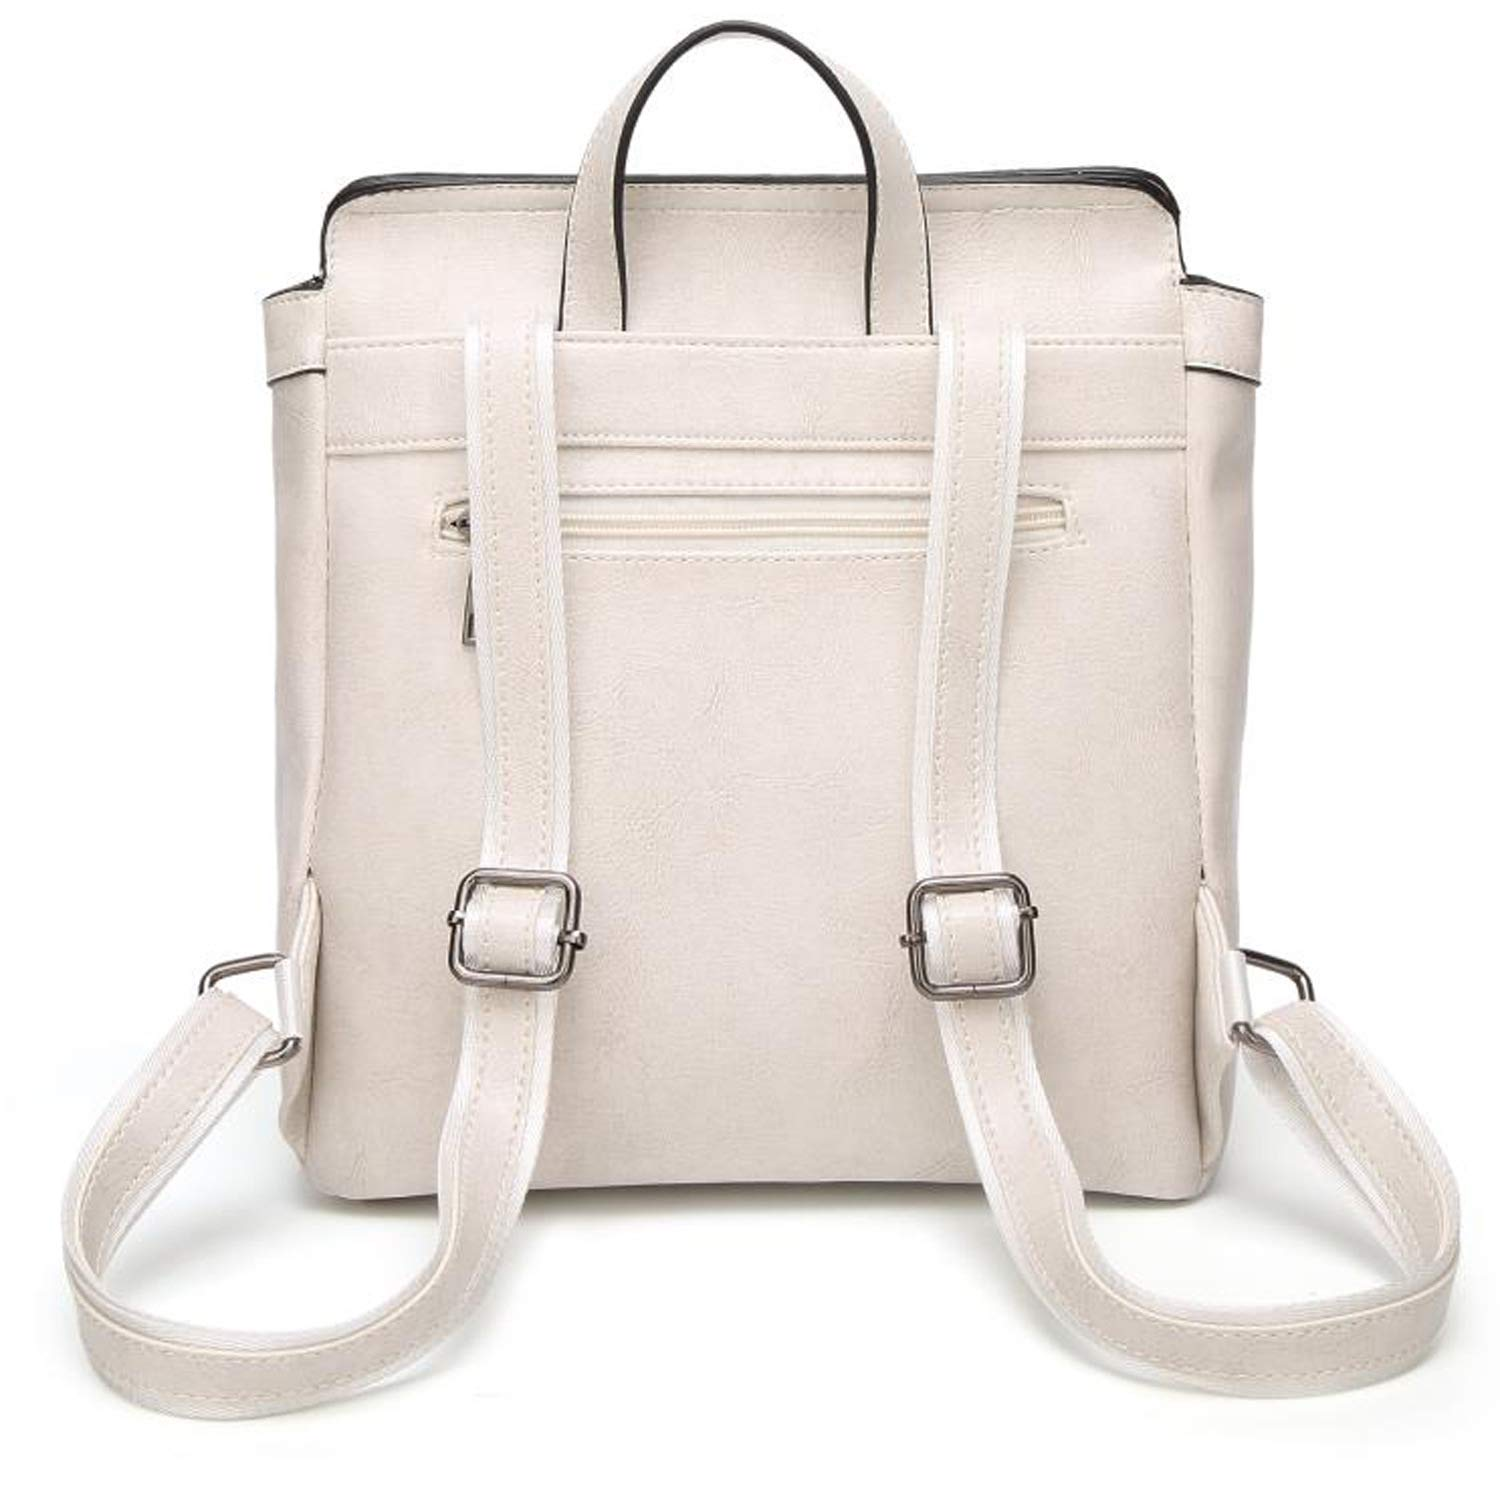 Crossbody Bags for Women Shoulder Bag Purses Small Ladies Handbags Messenger Bags by ACLULION (Image #2)